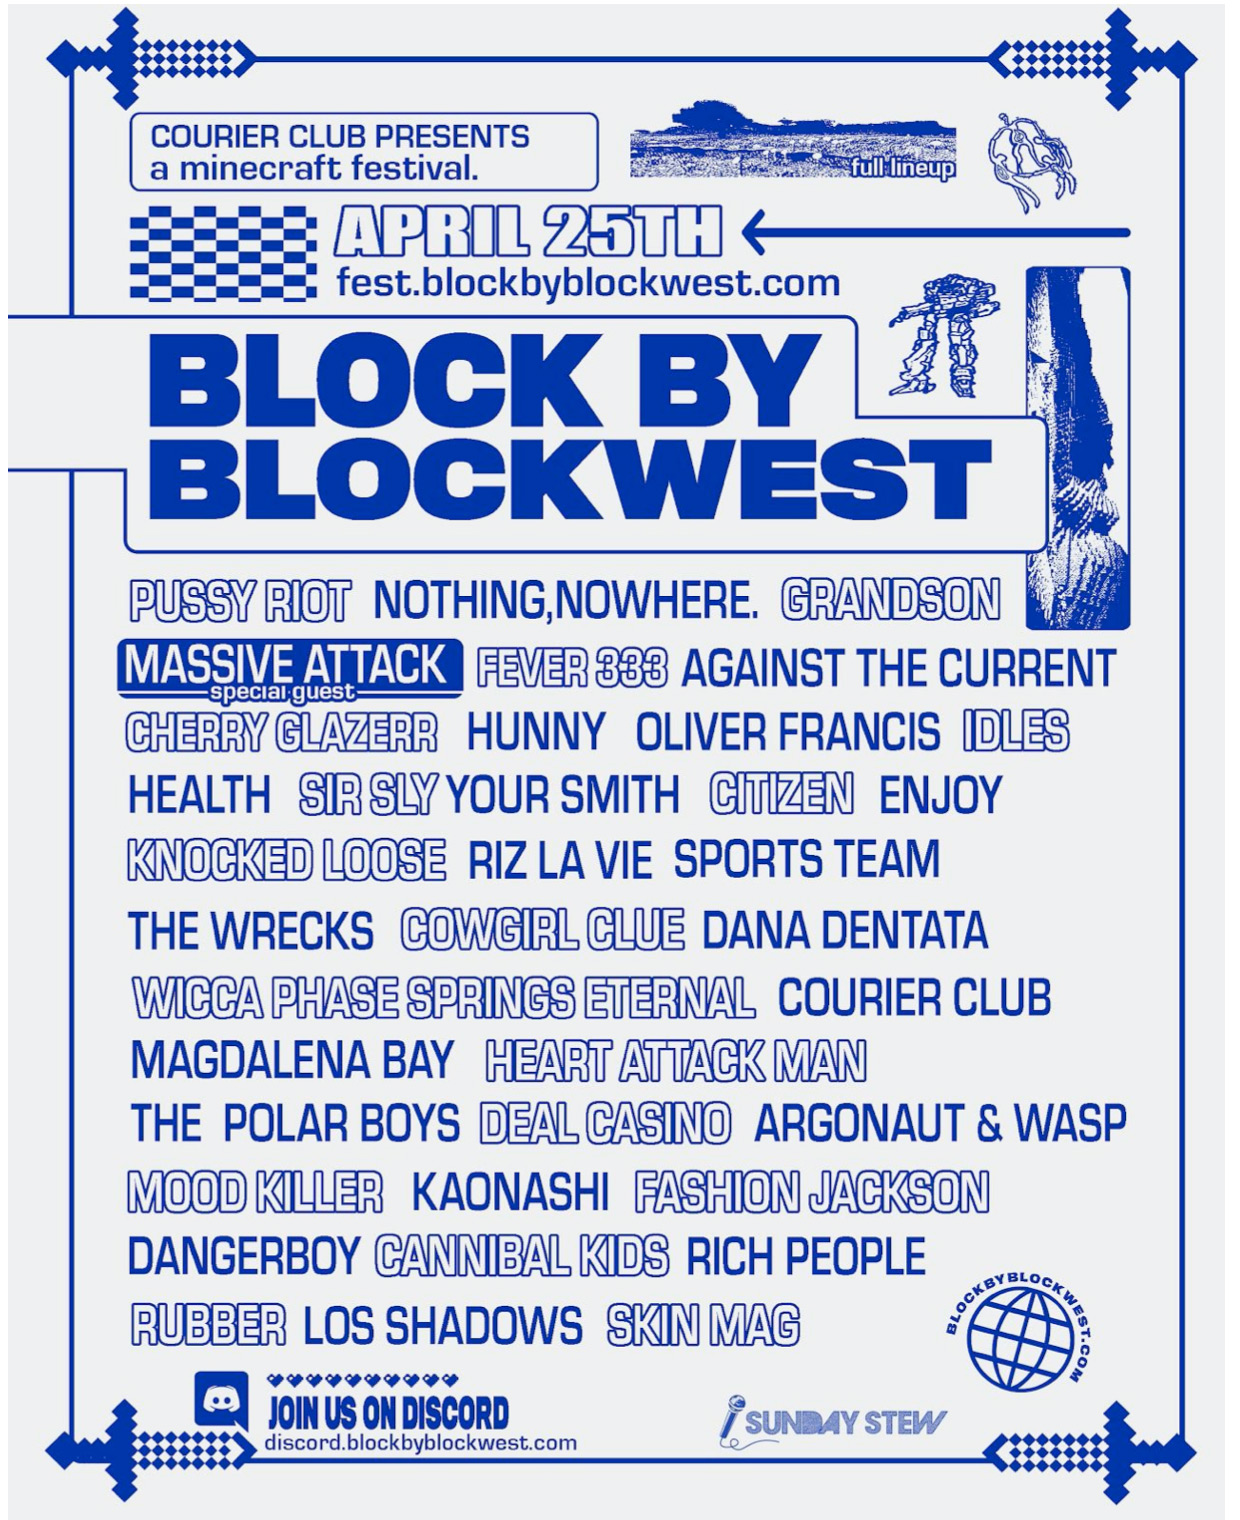 Block by Block West festival